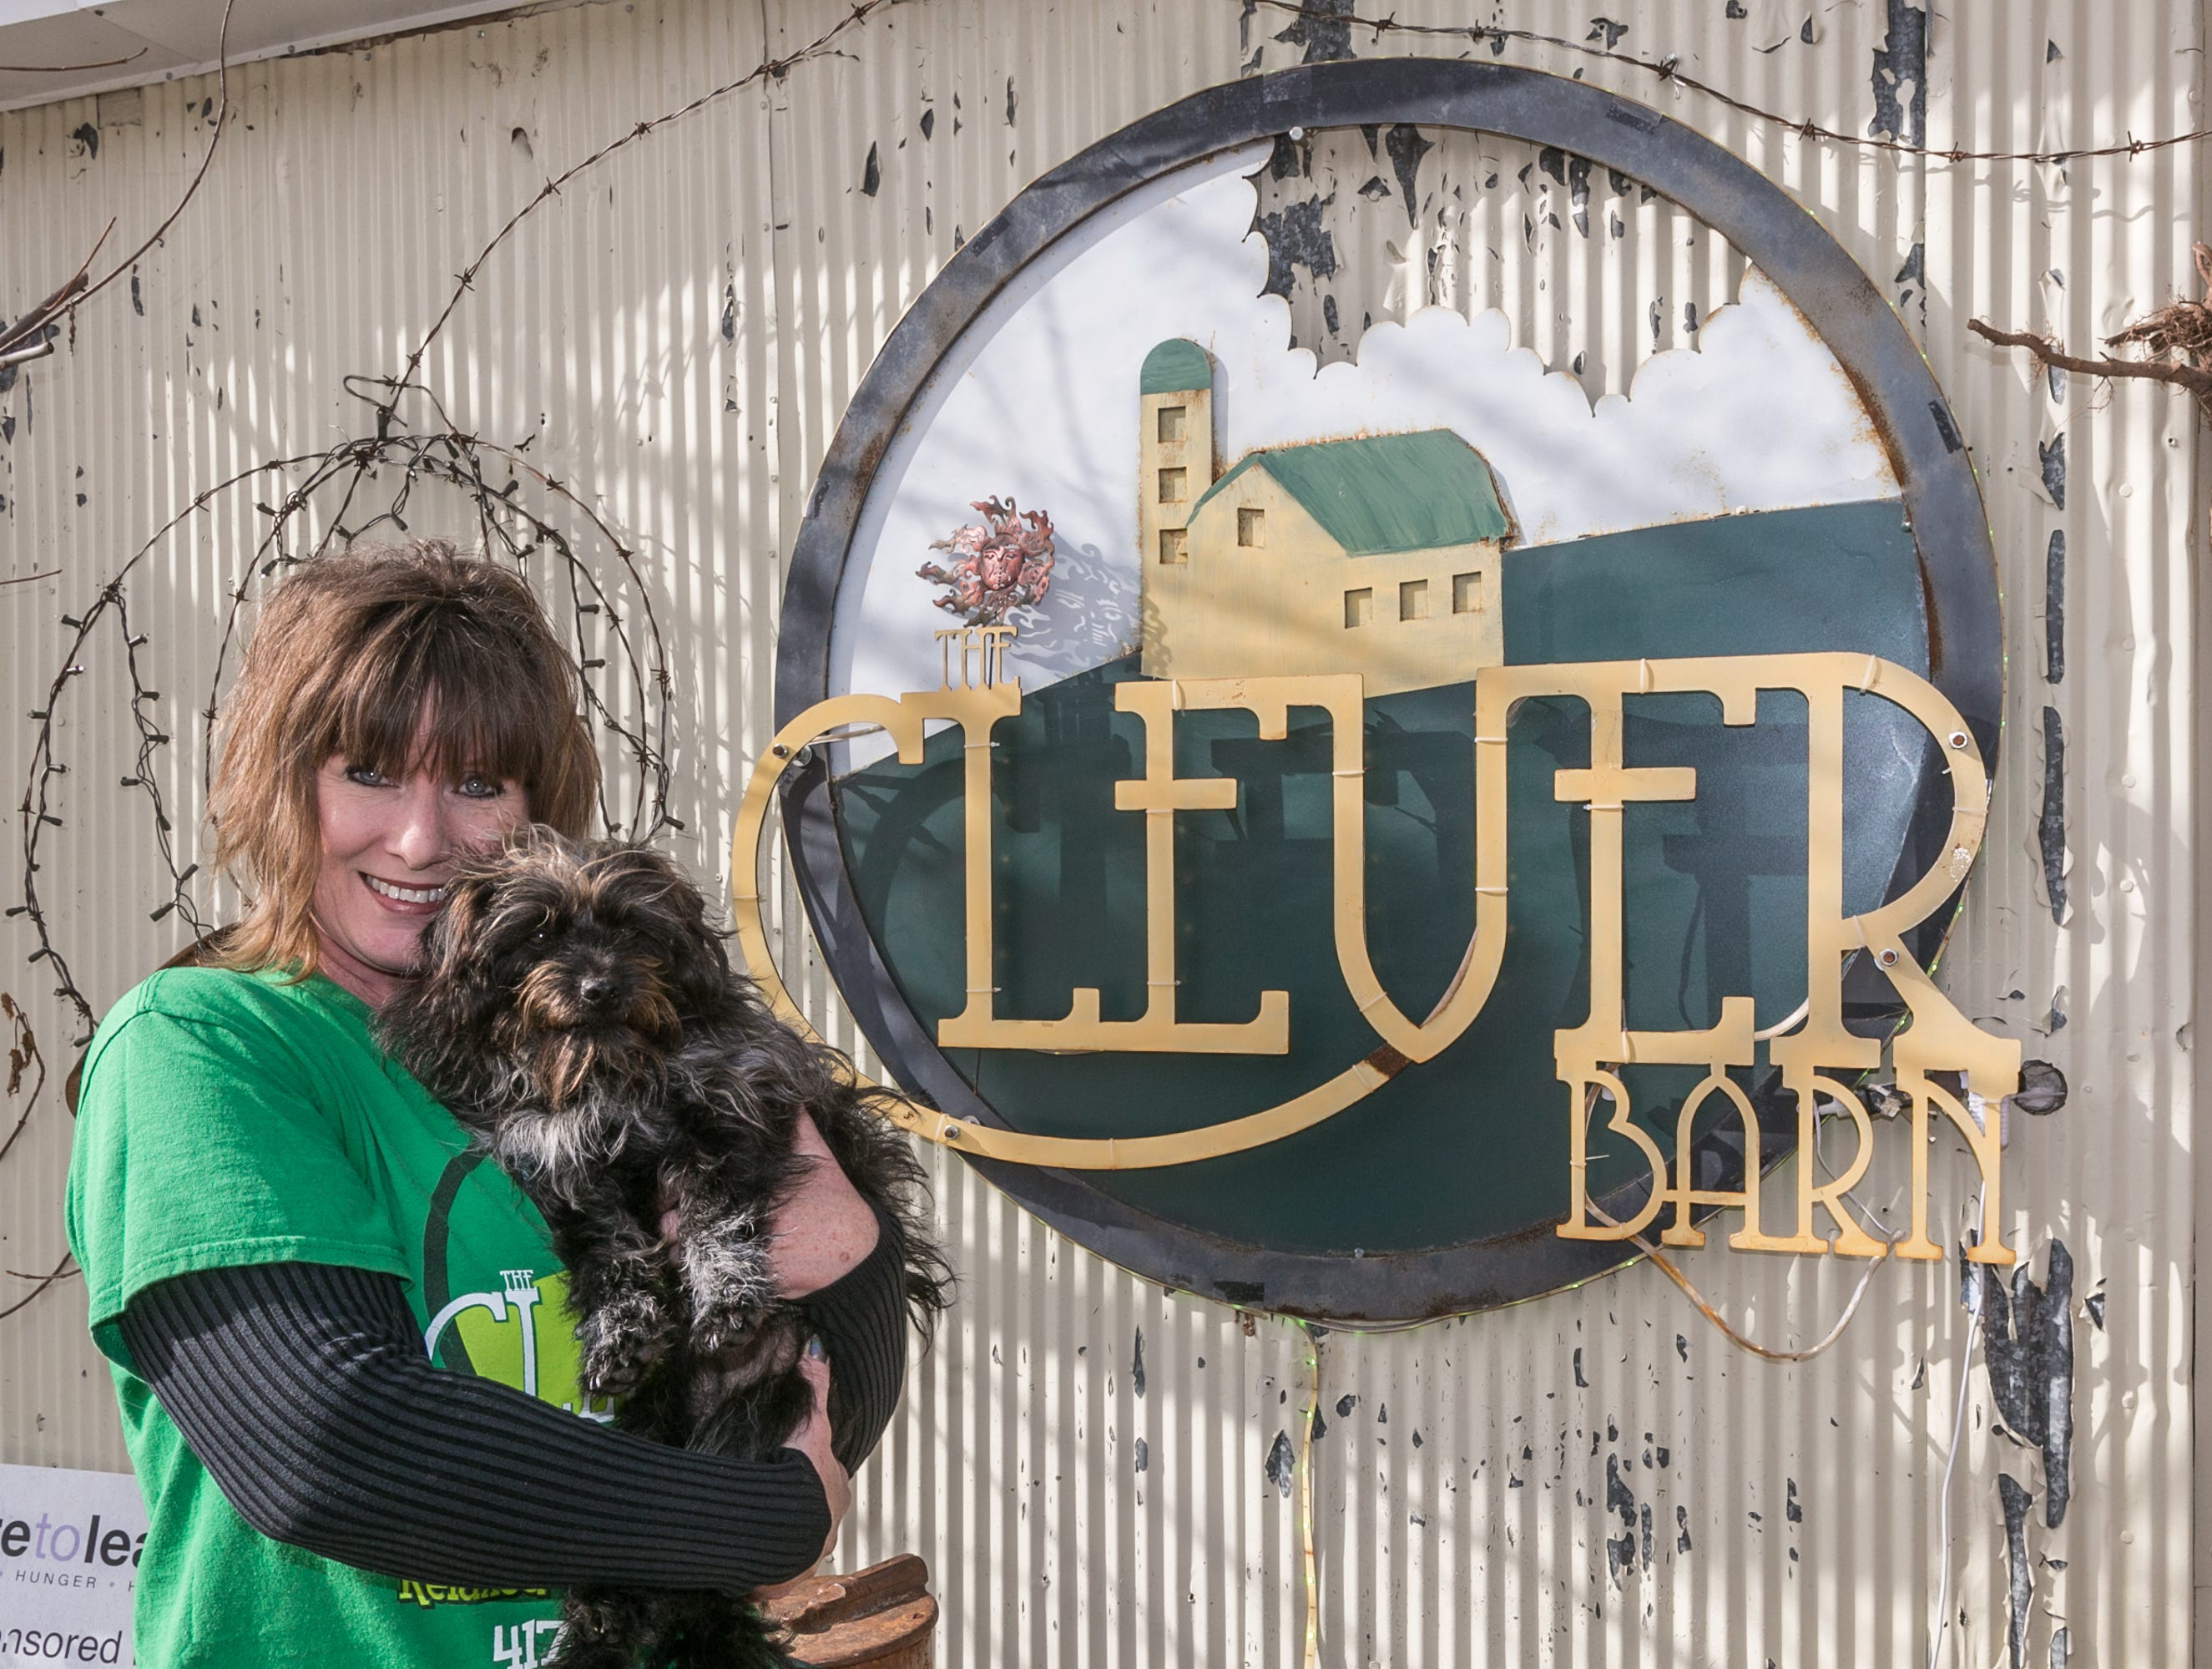 Laura Walden and Pepper outside of the Clever Barn on January 4, 2019.